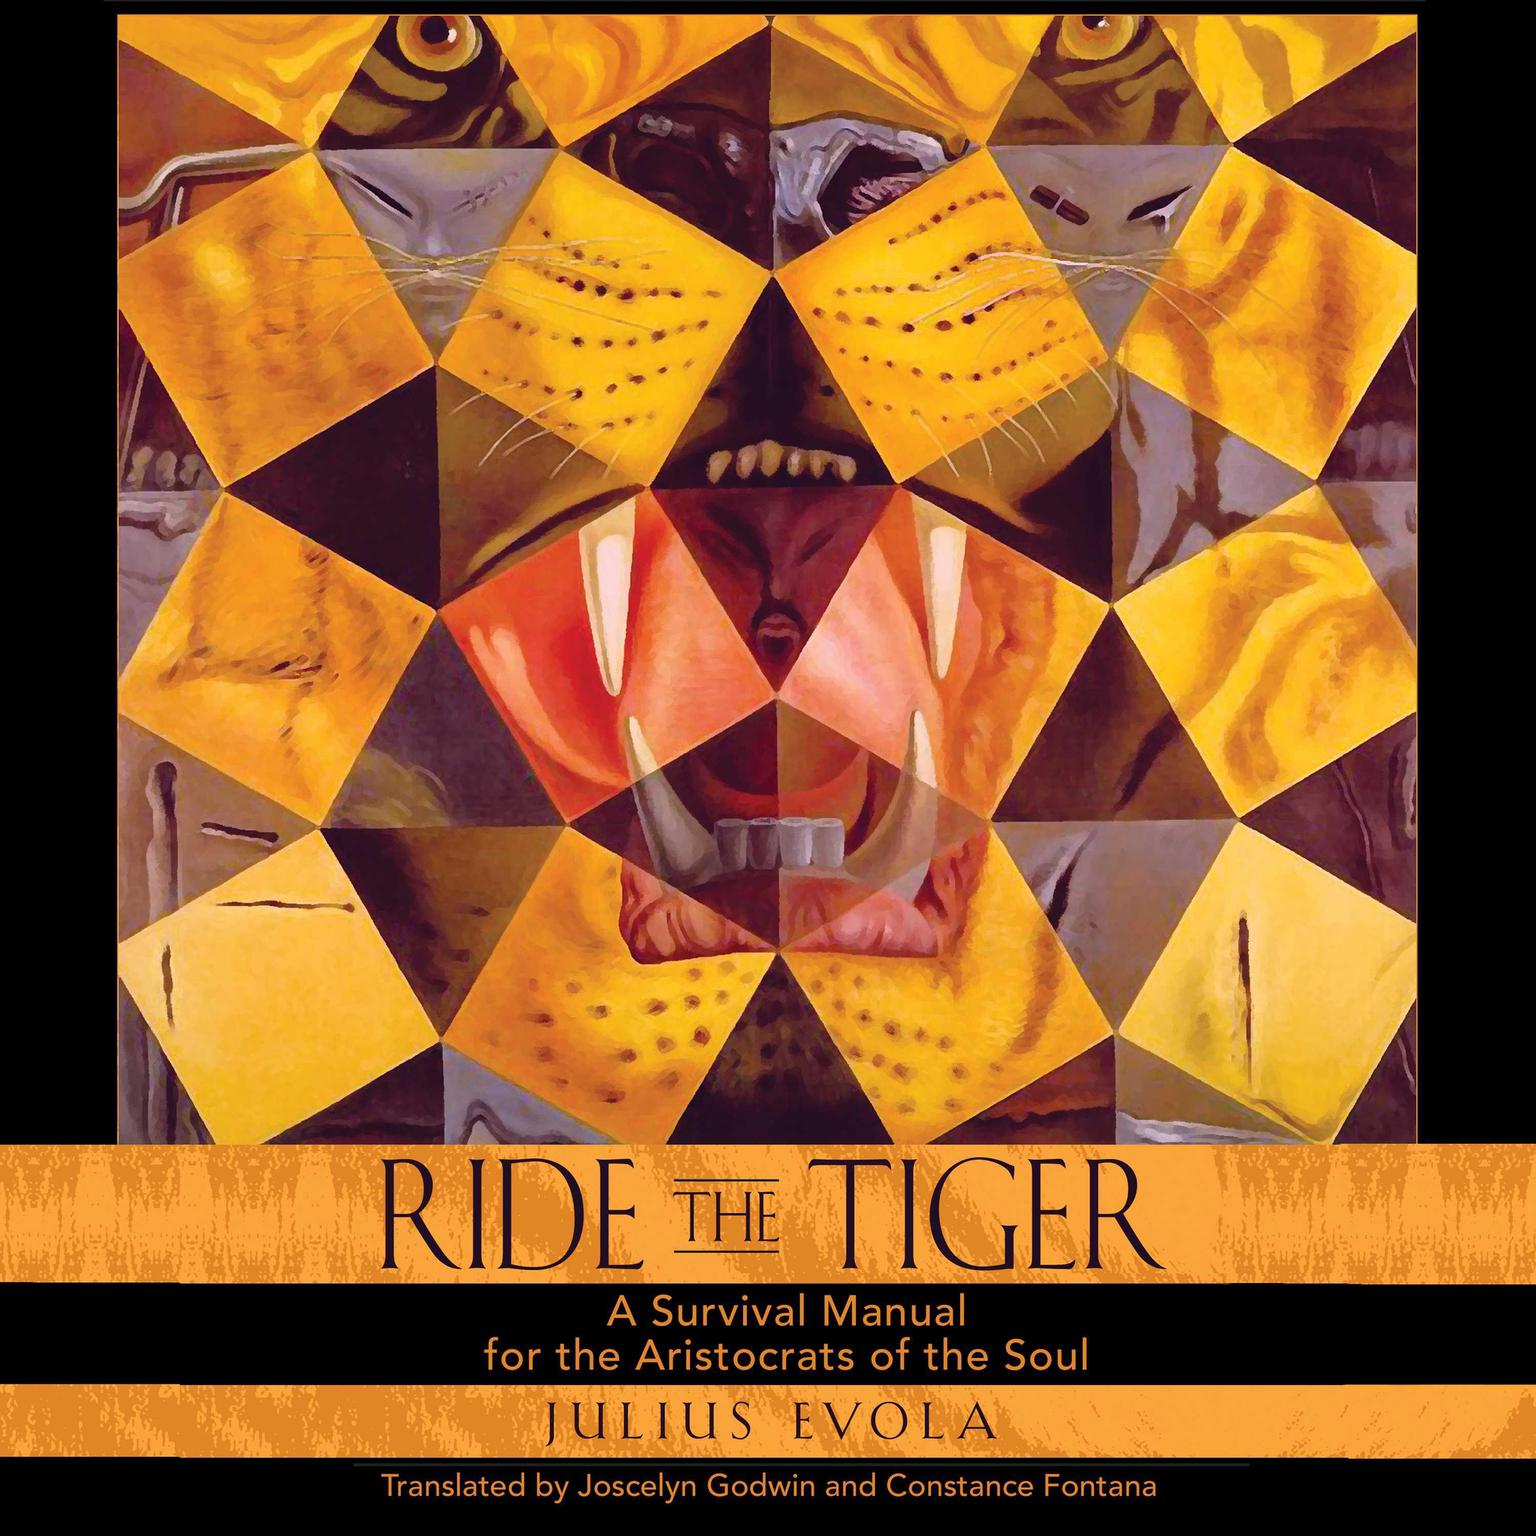 Ride the Tiger: A Survival Manual for the Aristocrats of the Soul Audiobook, by Julius Evola